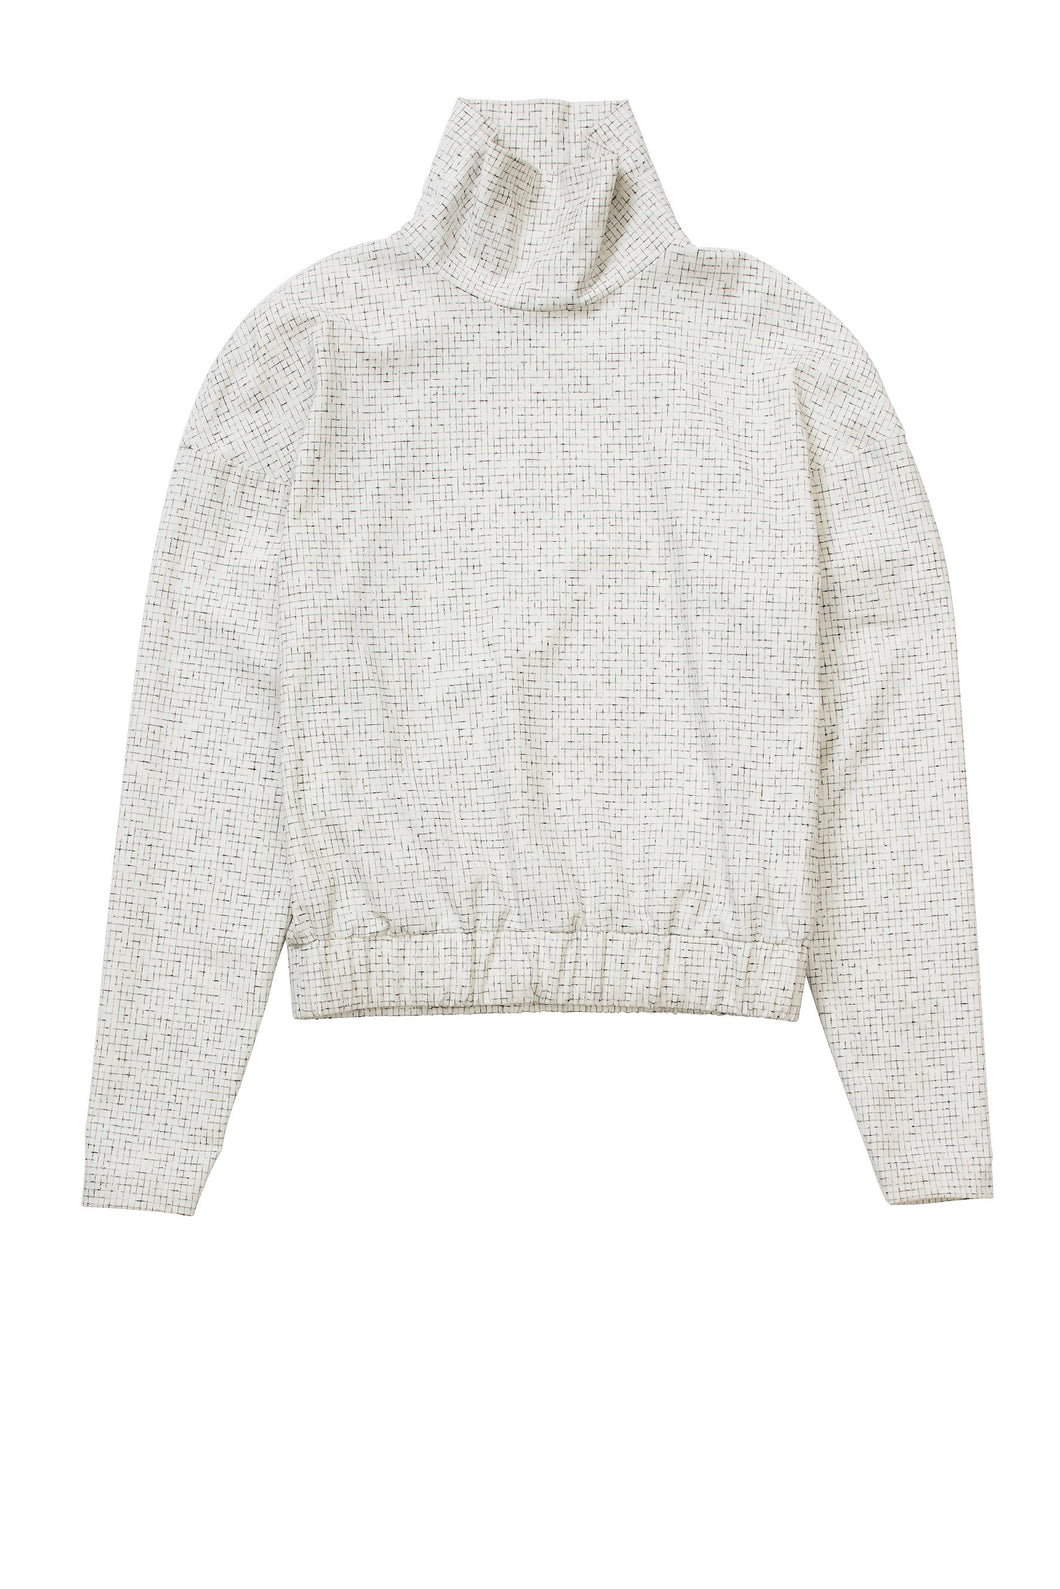 50% OFF  Angle Sweater, Unisex